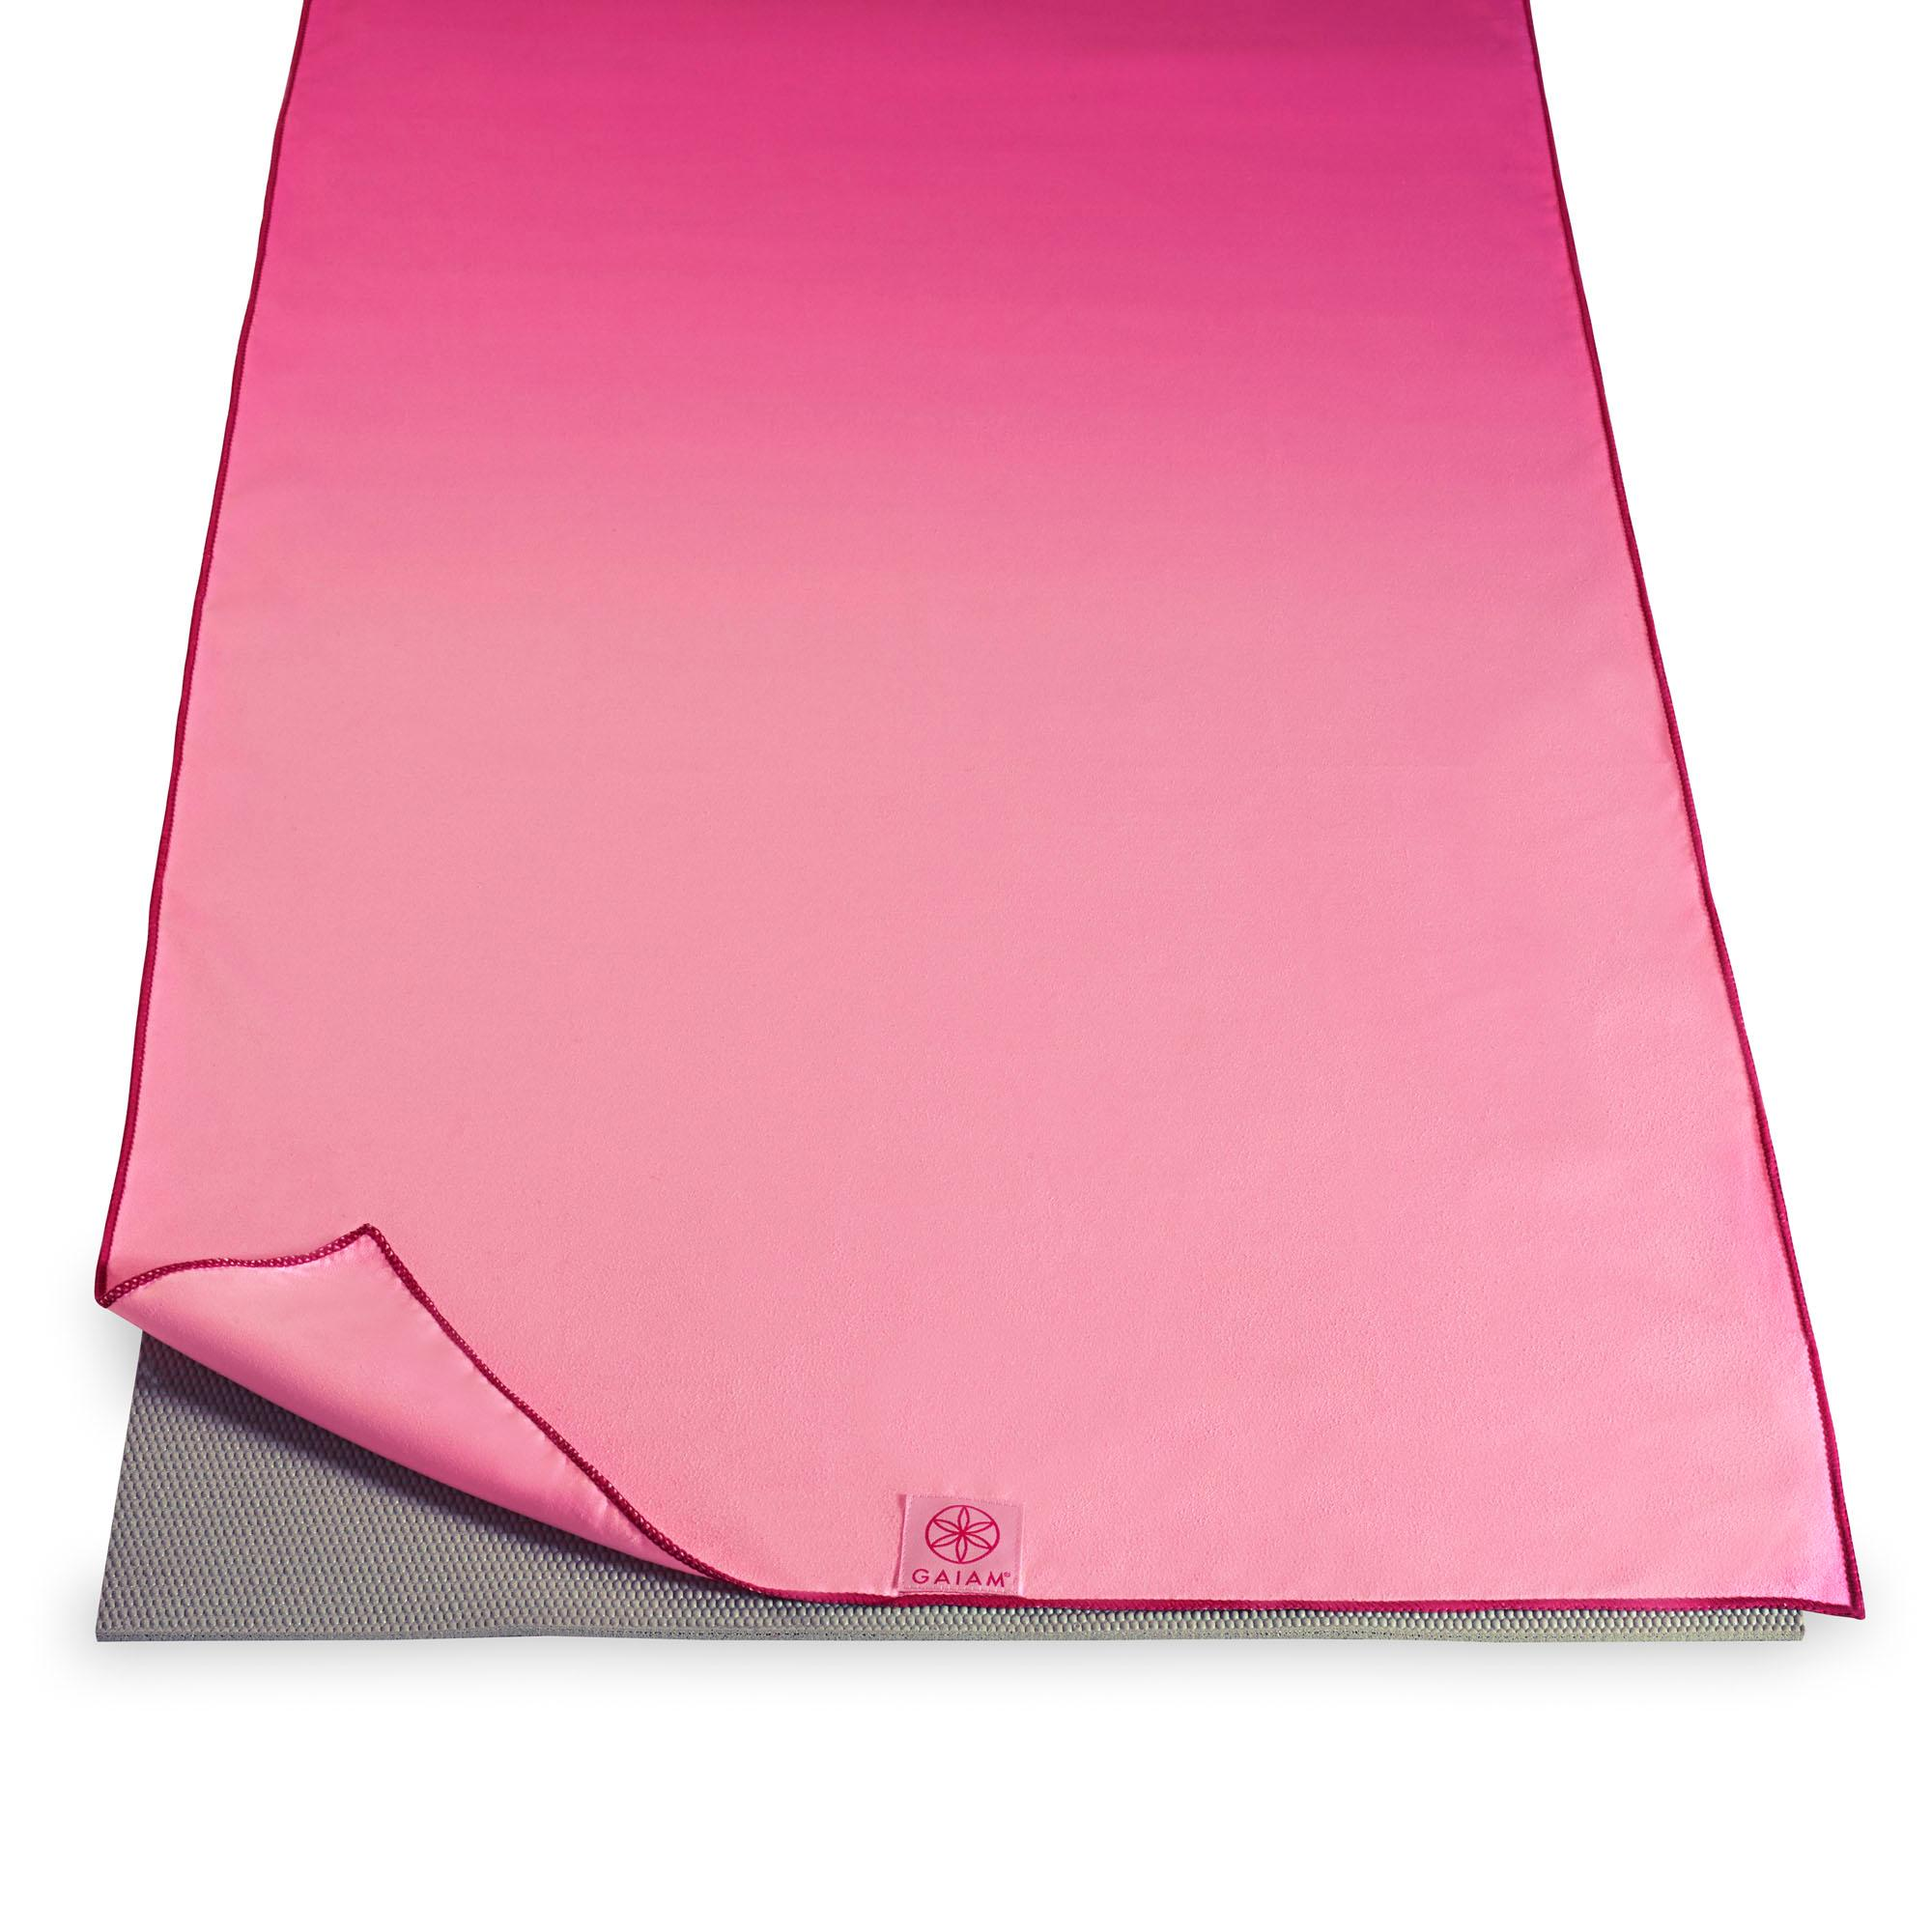 the mat for microfiber skidless slip hot beautiful lightweight pin sized non construction mats absorbent ultra yoga towel towels